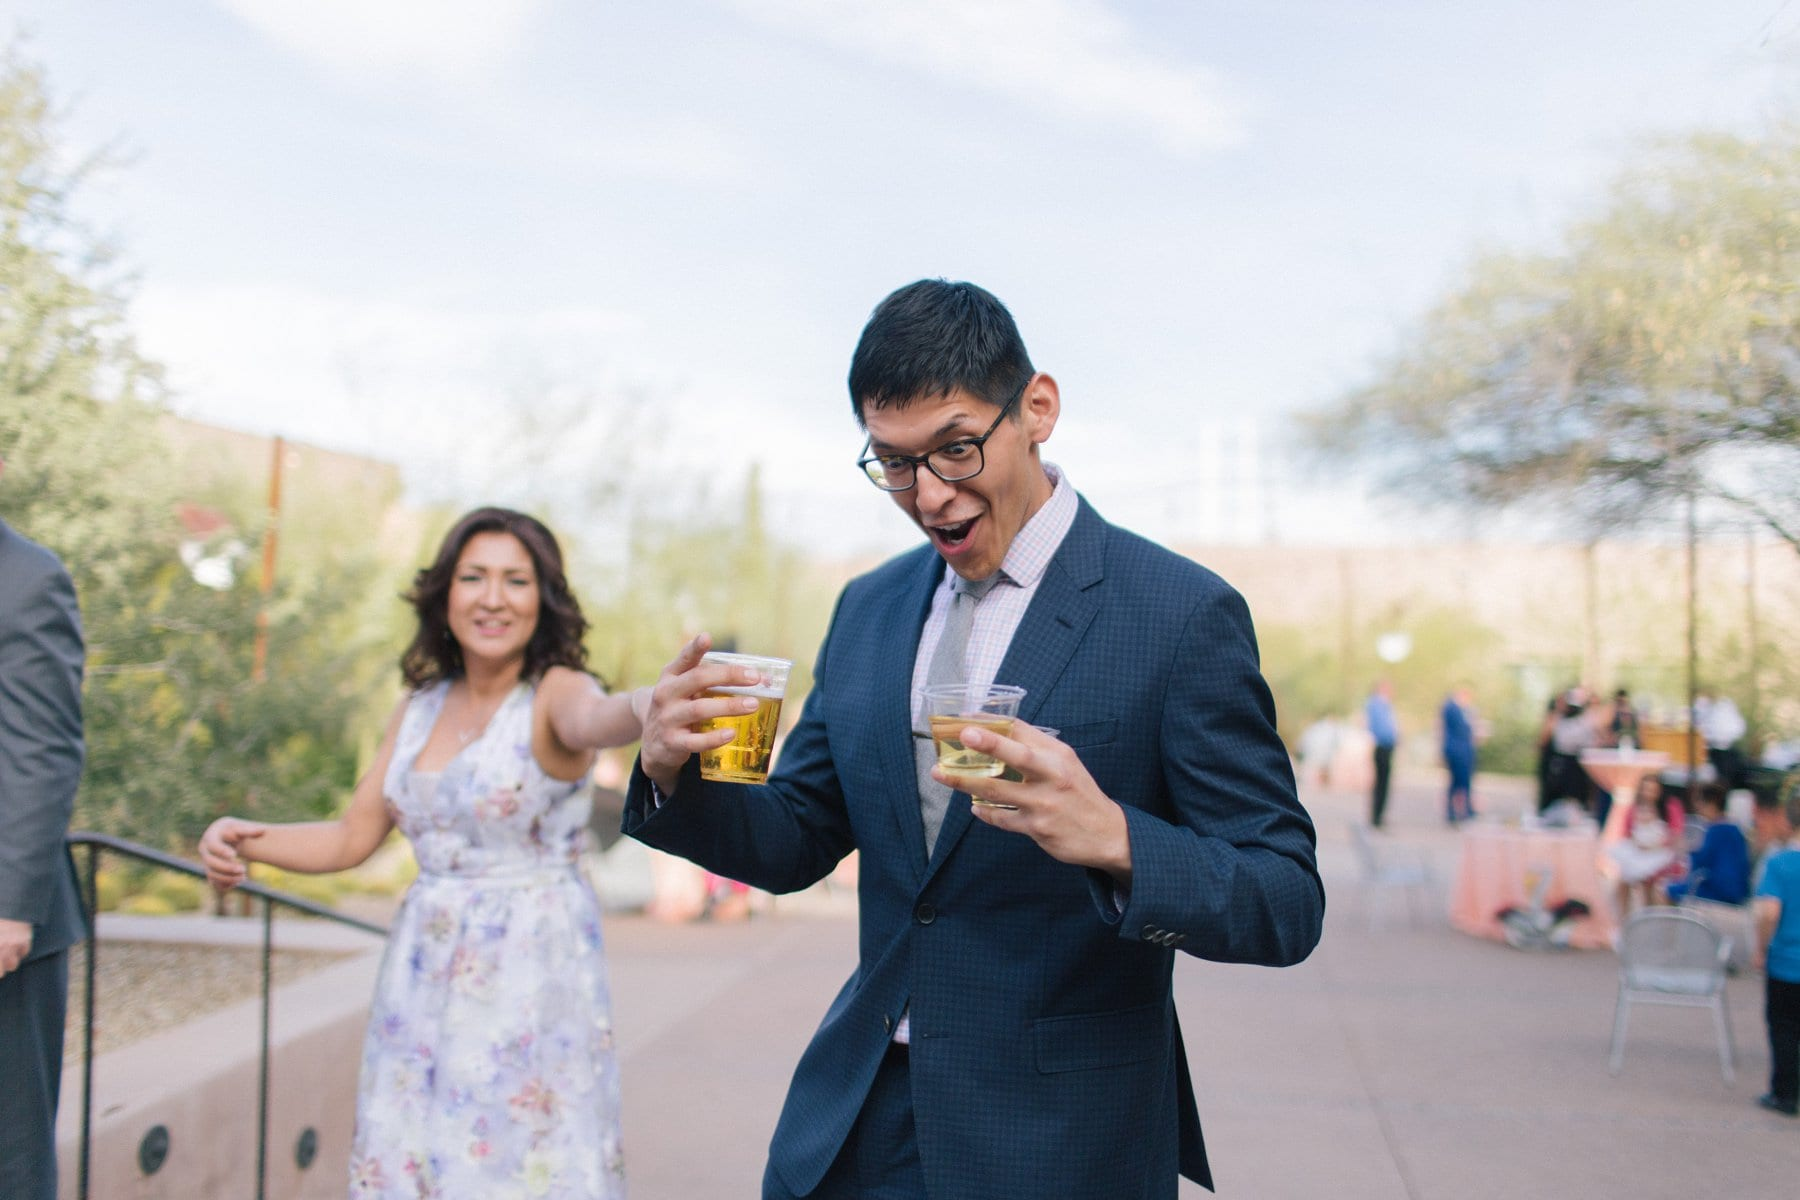 wedding guest really excited about alcohol funny wedding photo Phoenix documentary wedding photographer